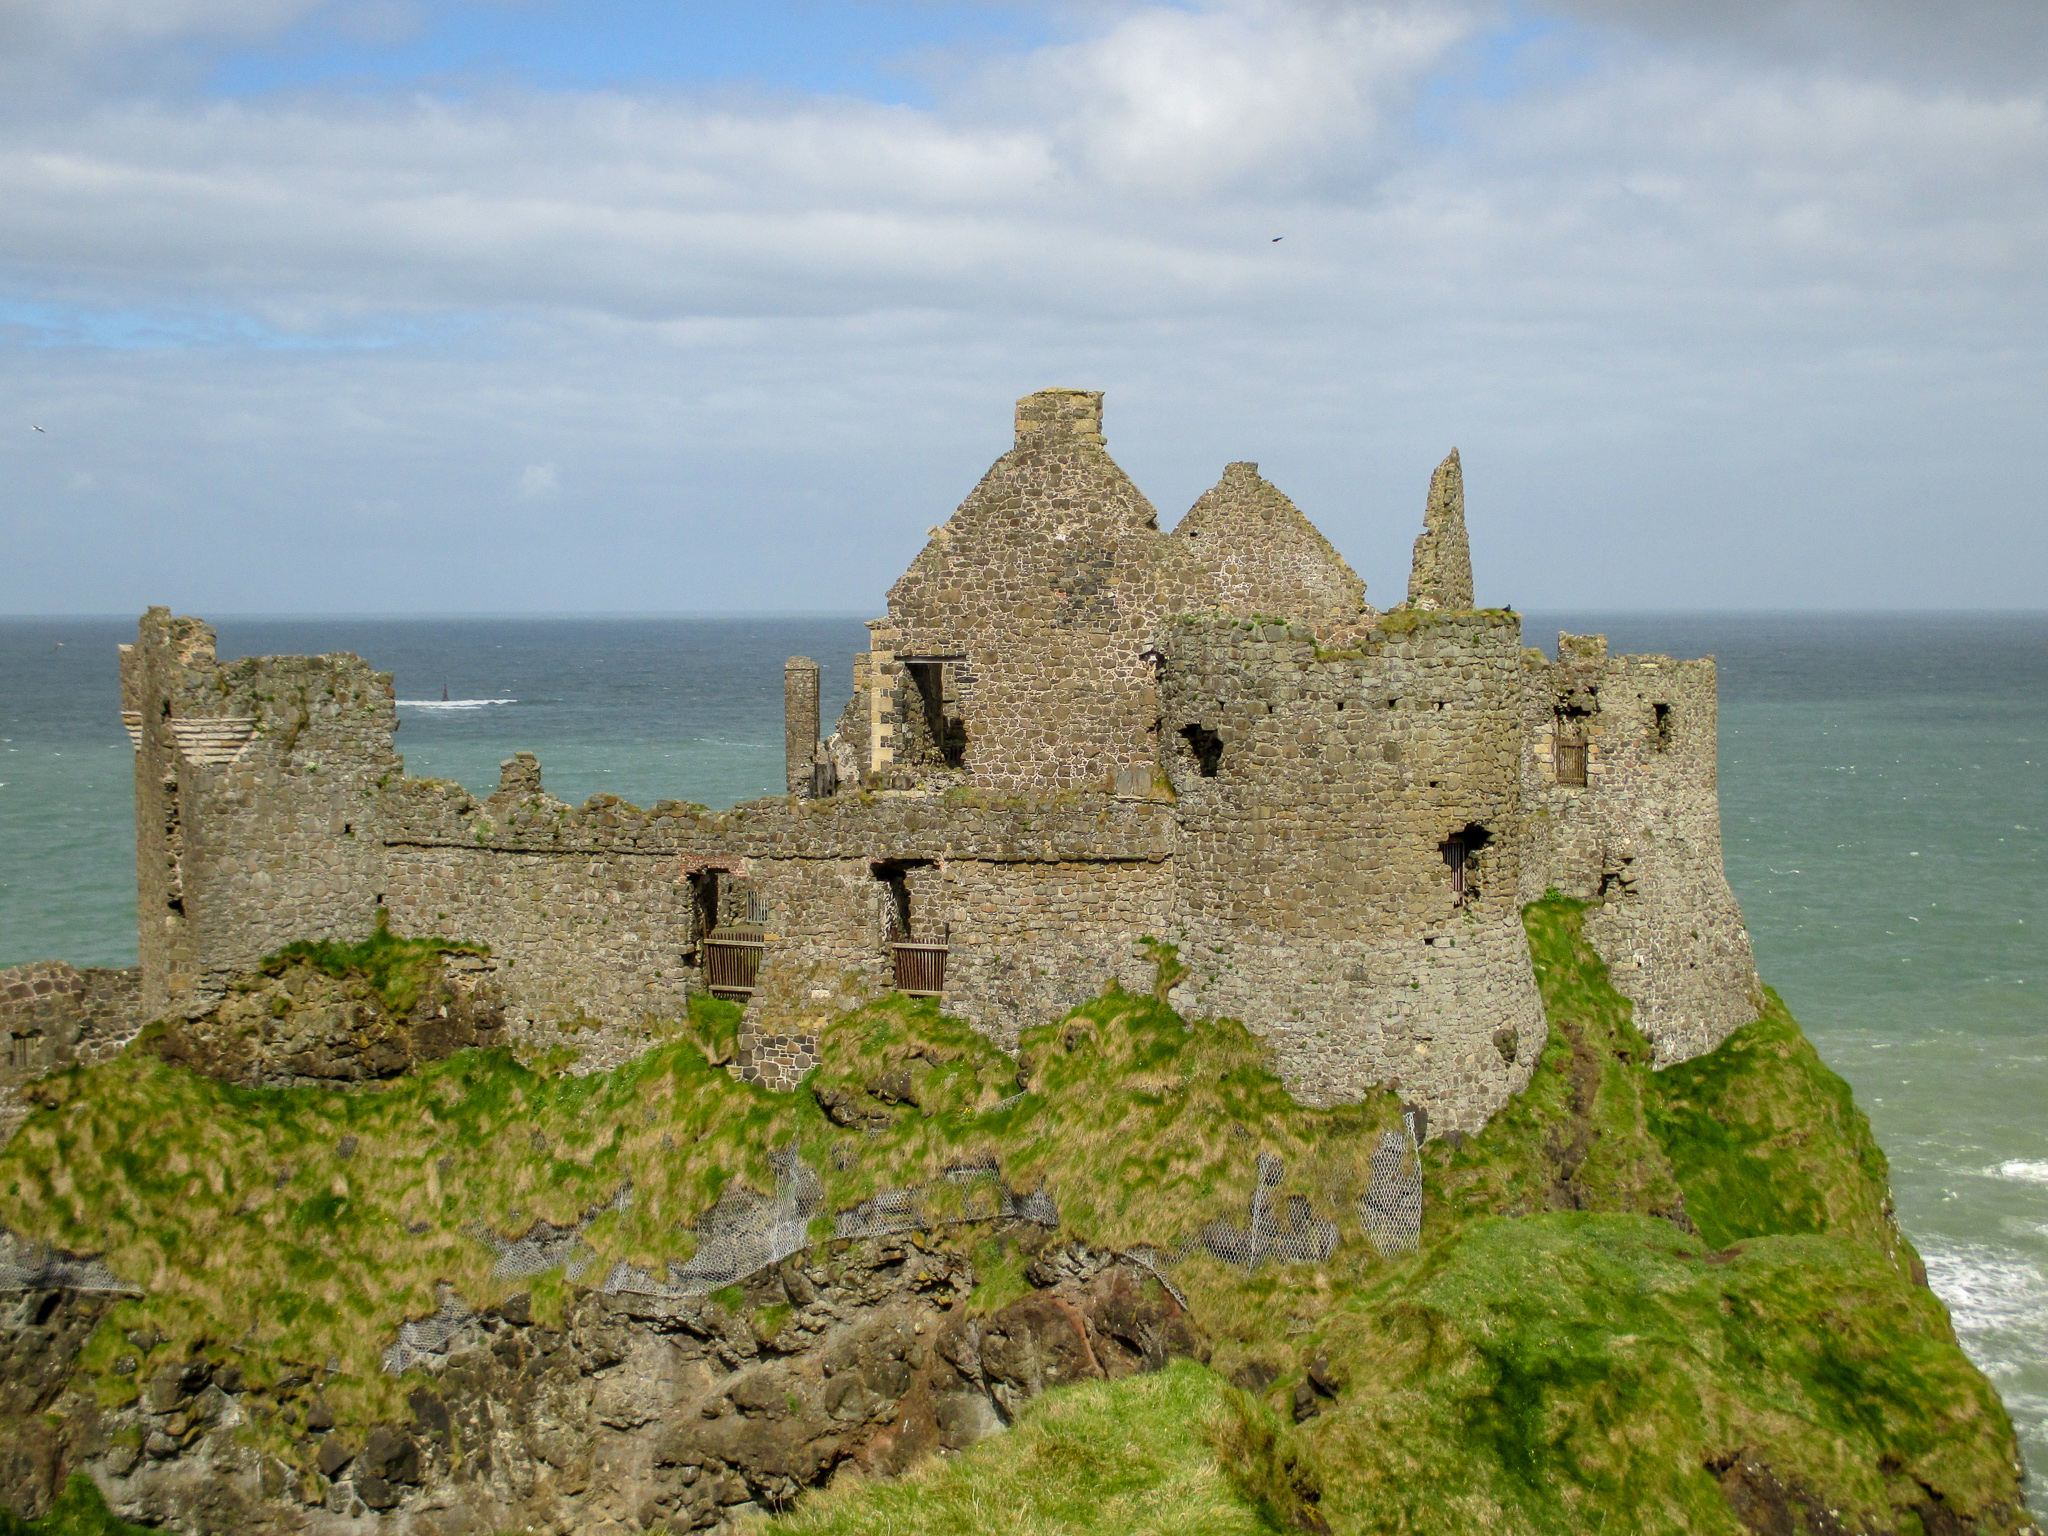 packing for ireland in april: have boots to explore ruined castles